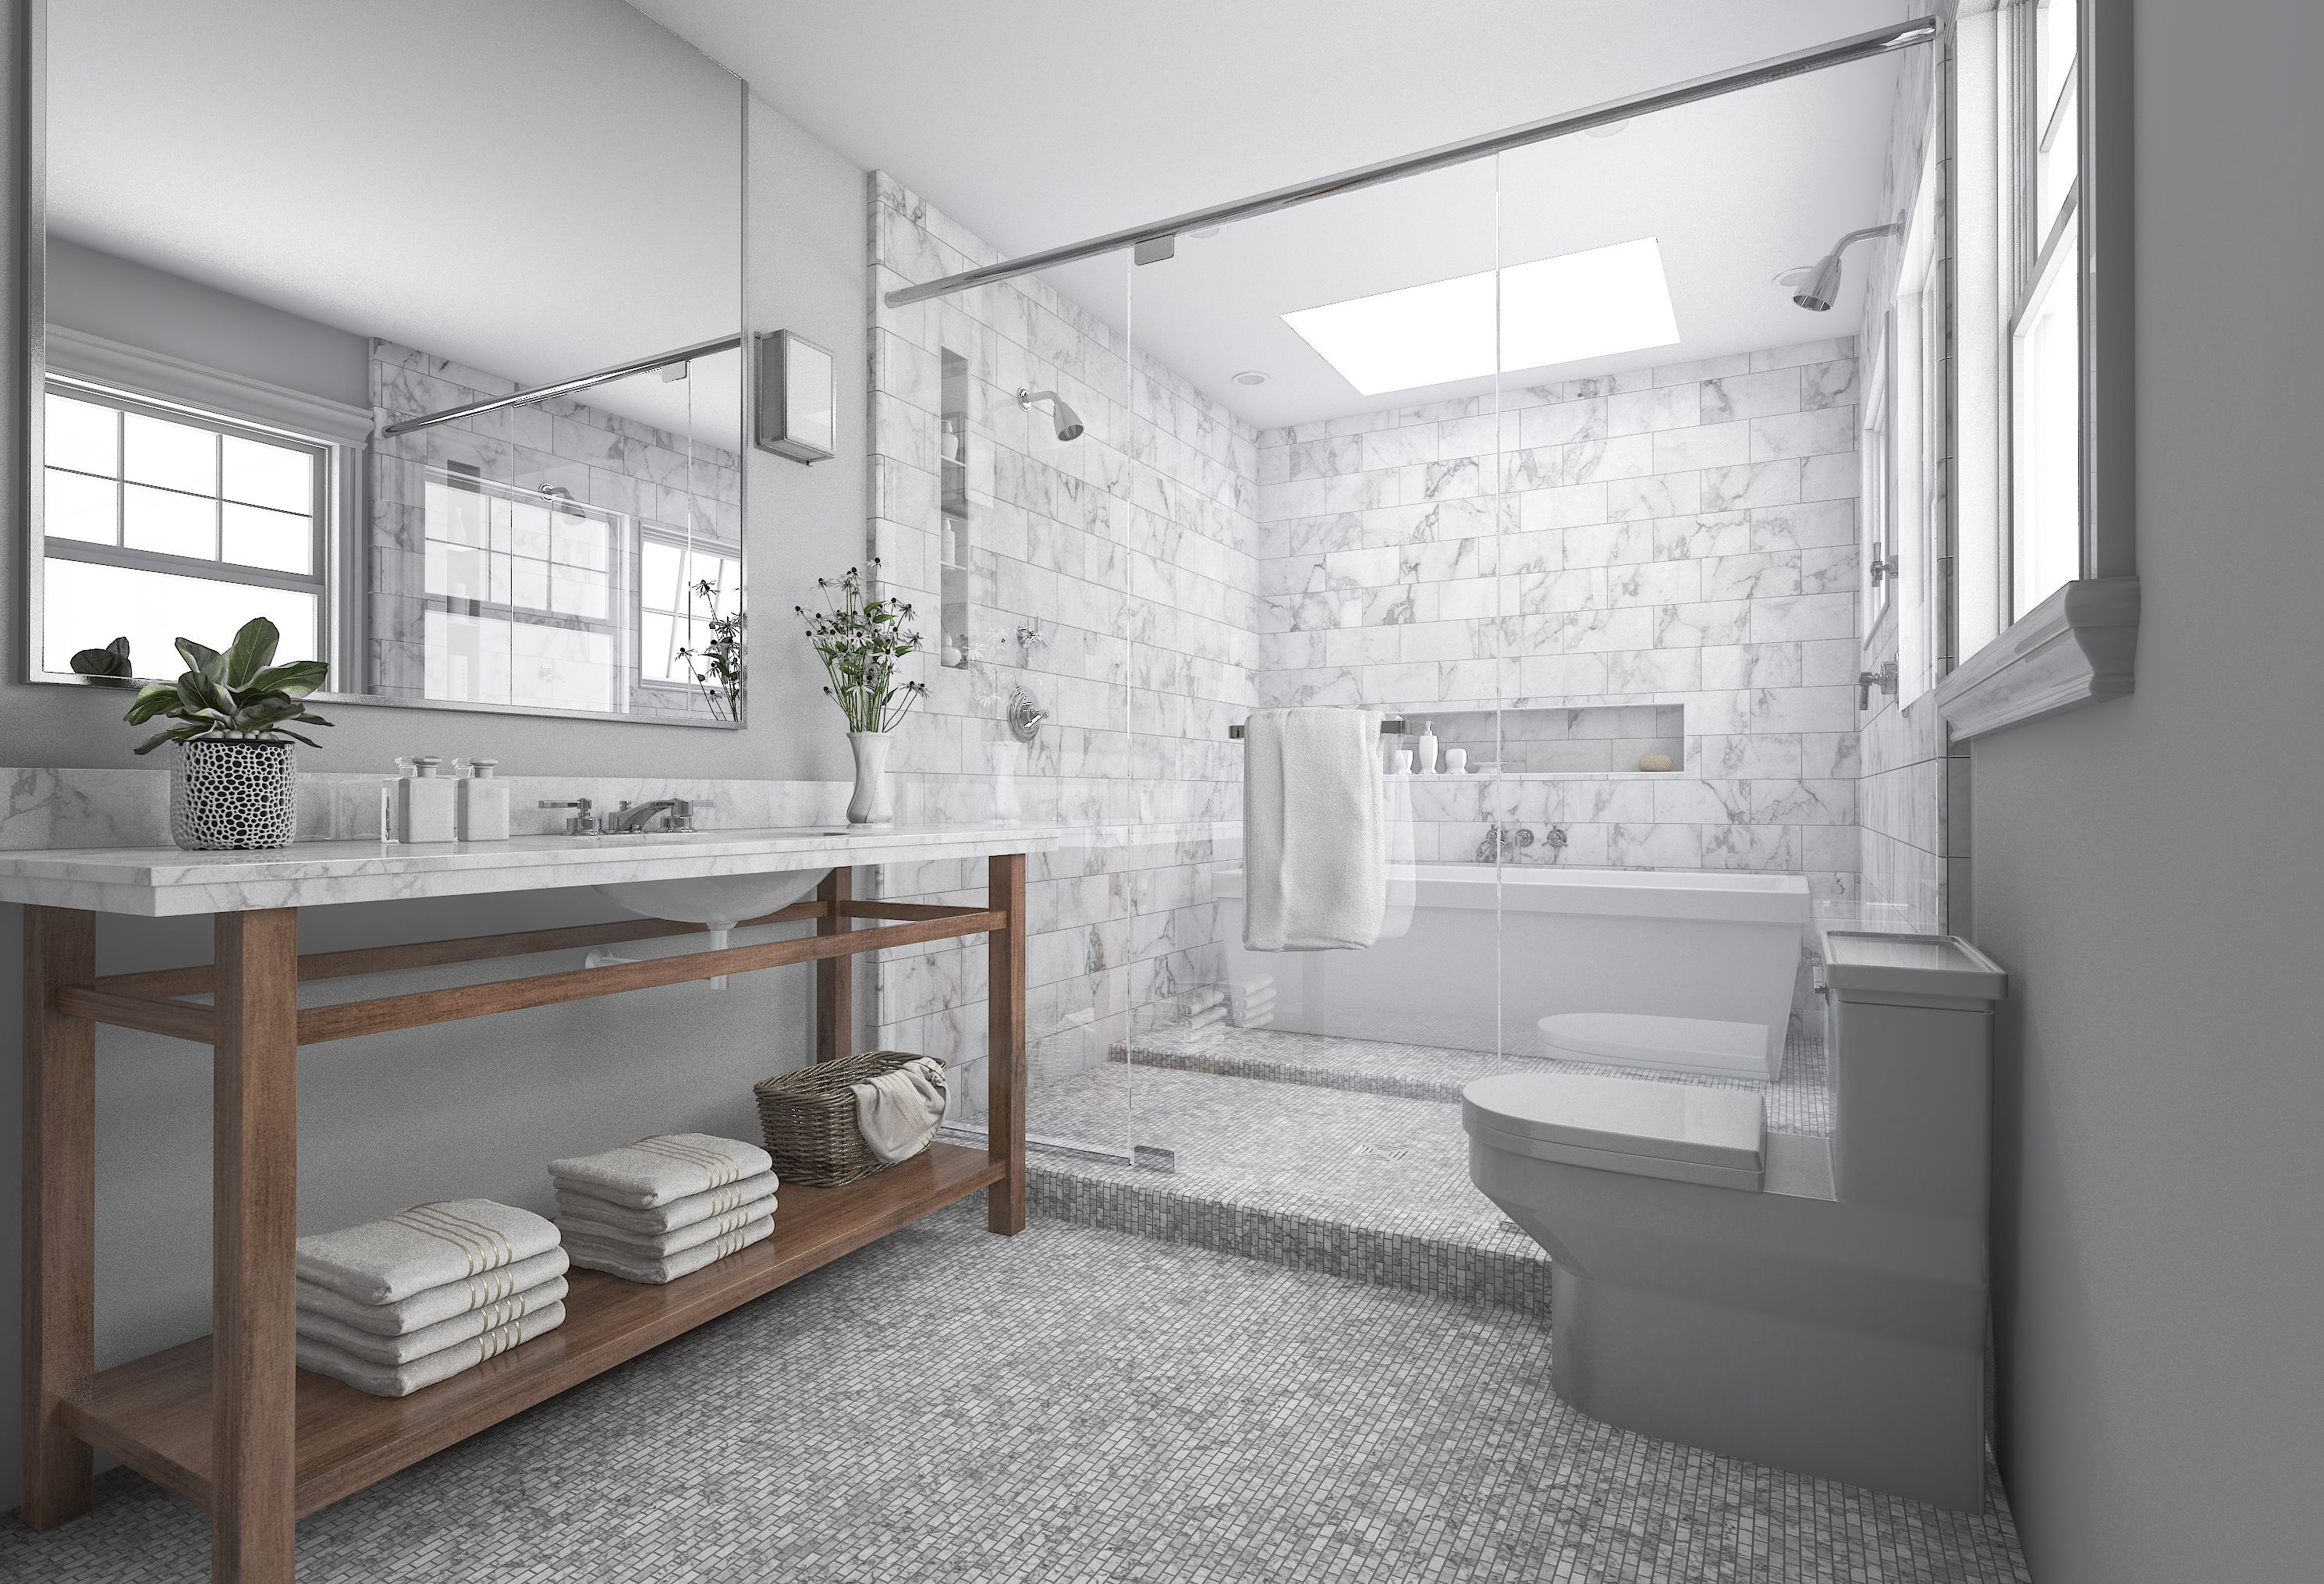 Bathroomdesignmelbourne Modern Master Bathroom Remodel Bathroom Interior Bathroom Remodel Master